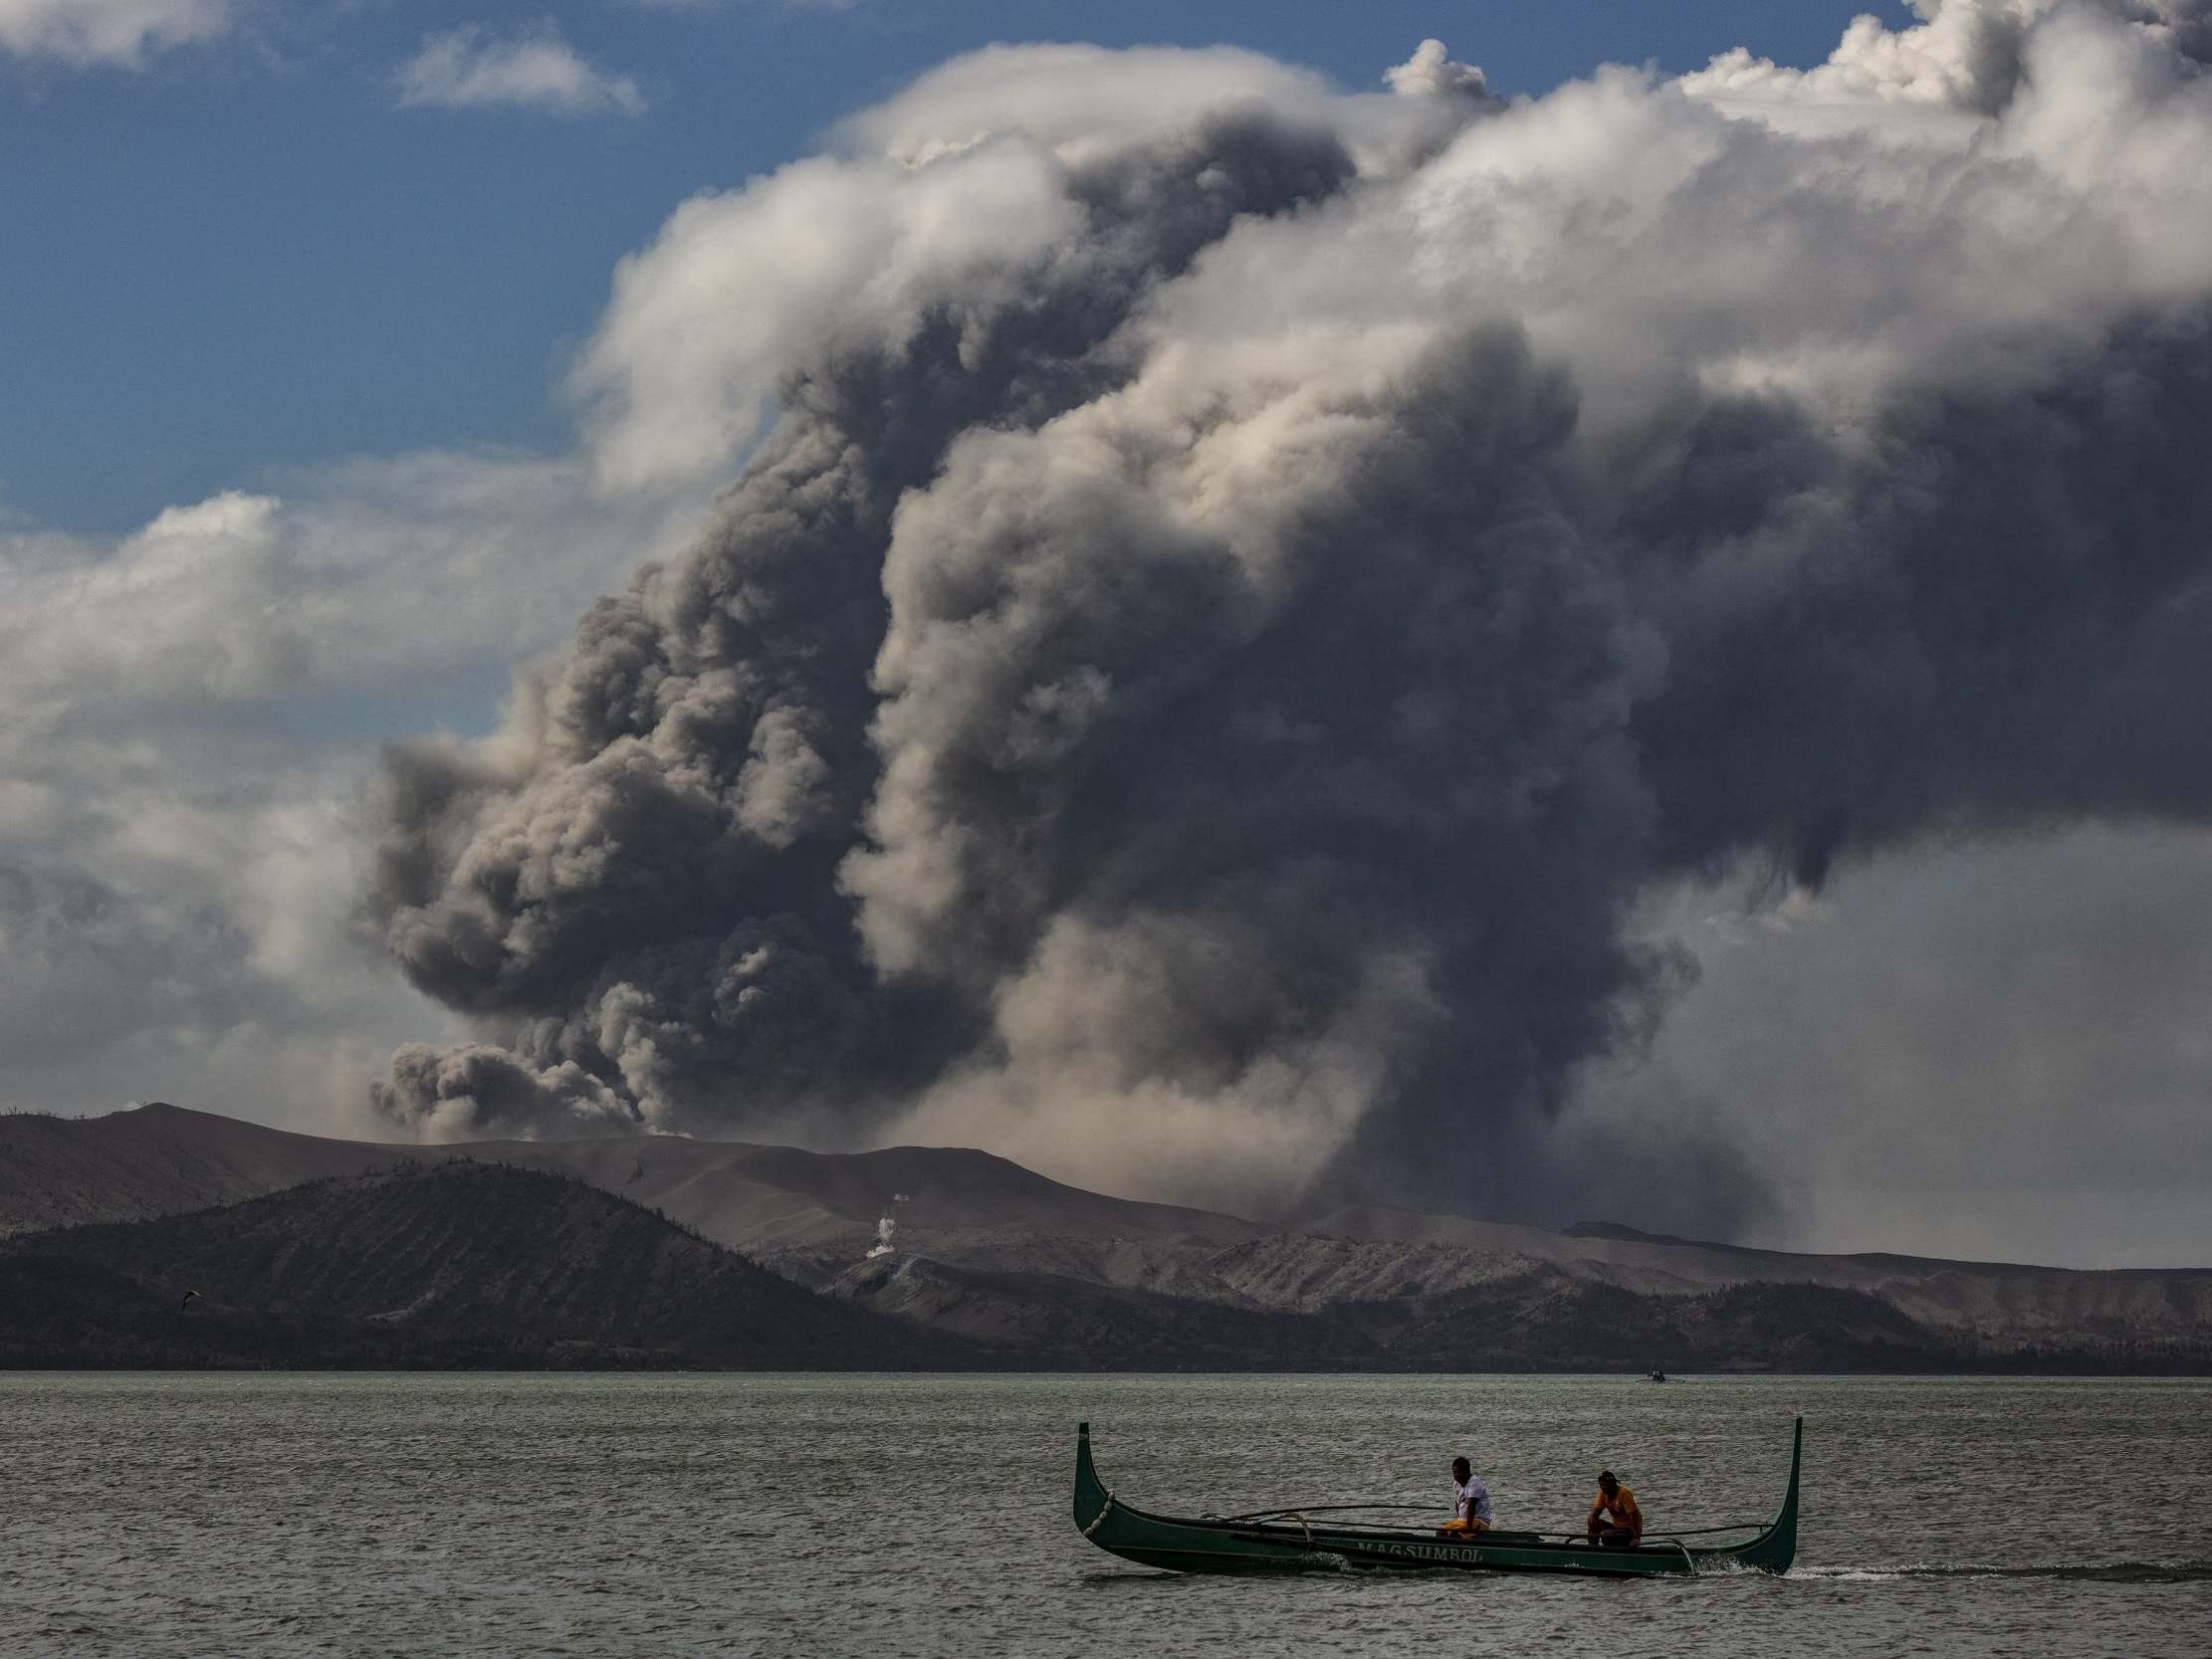 News about the Taal volcano in the Philippines - live: the latest updates today, with the outbreak of other earthquakes